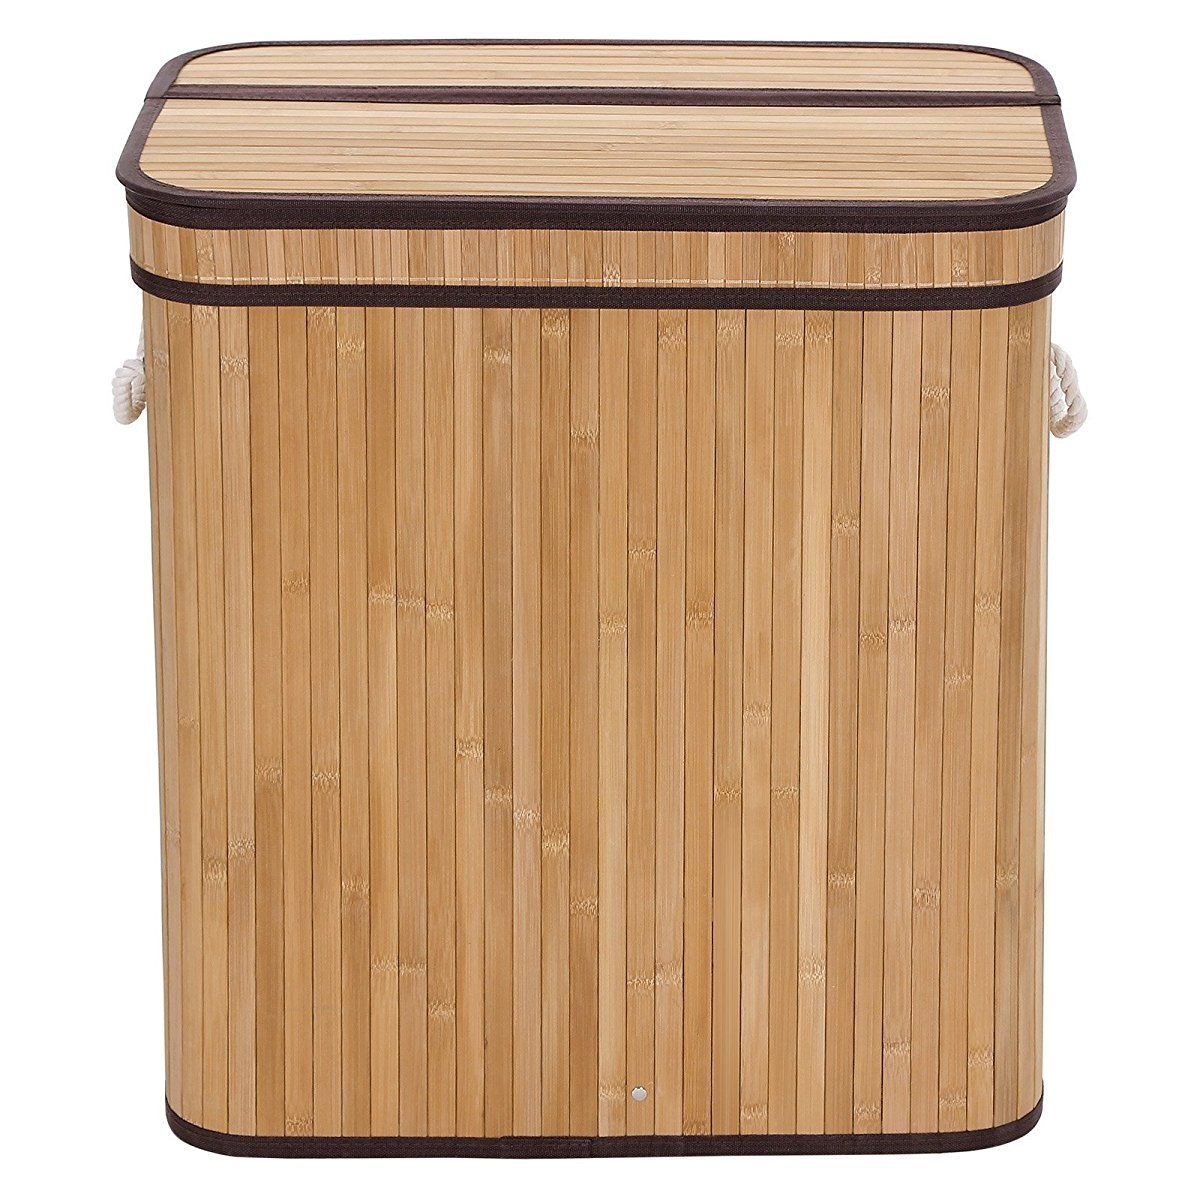 Songmics Laundry Hamper Basket Double Clothes Storage Natural